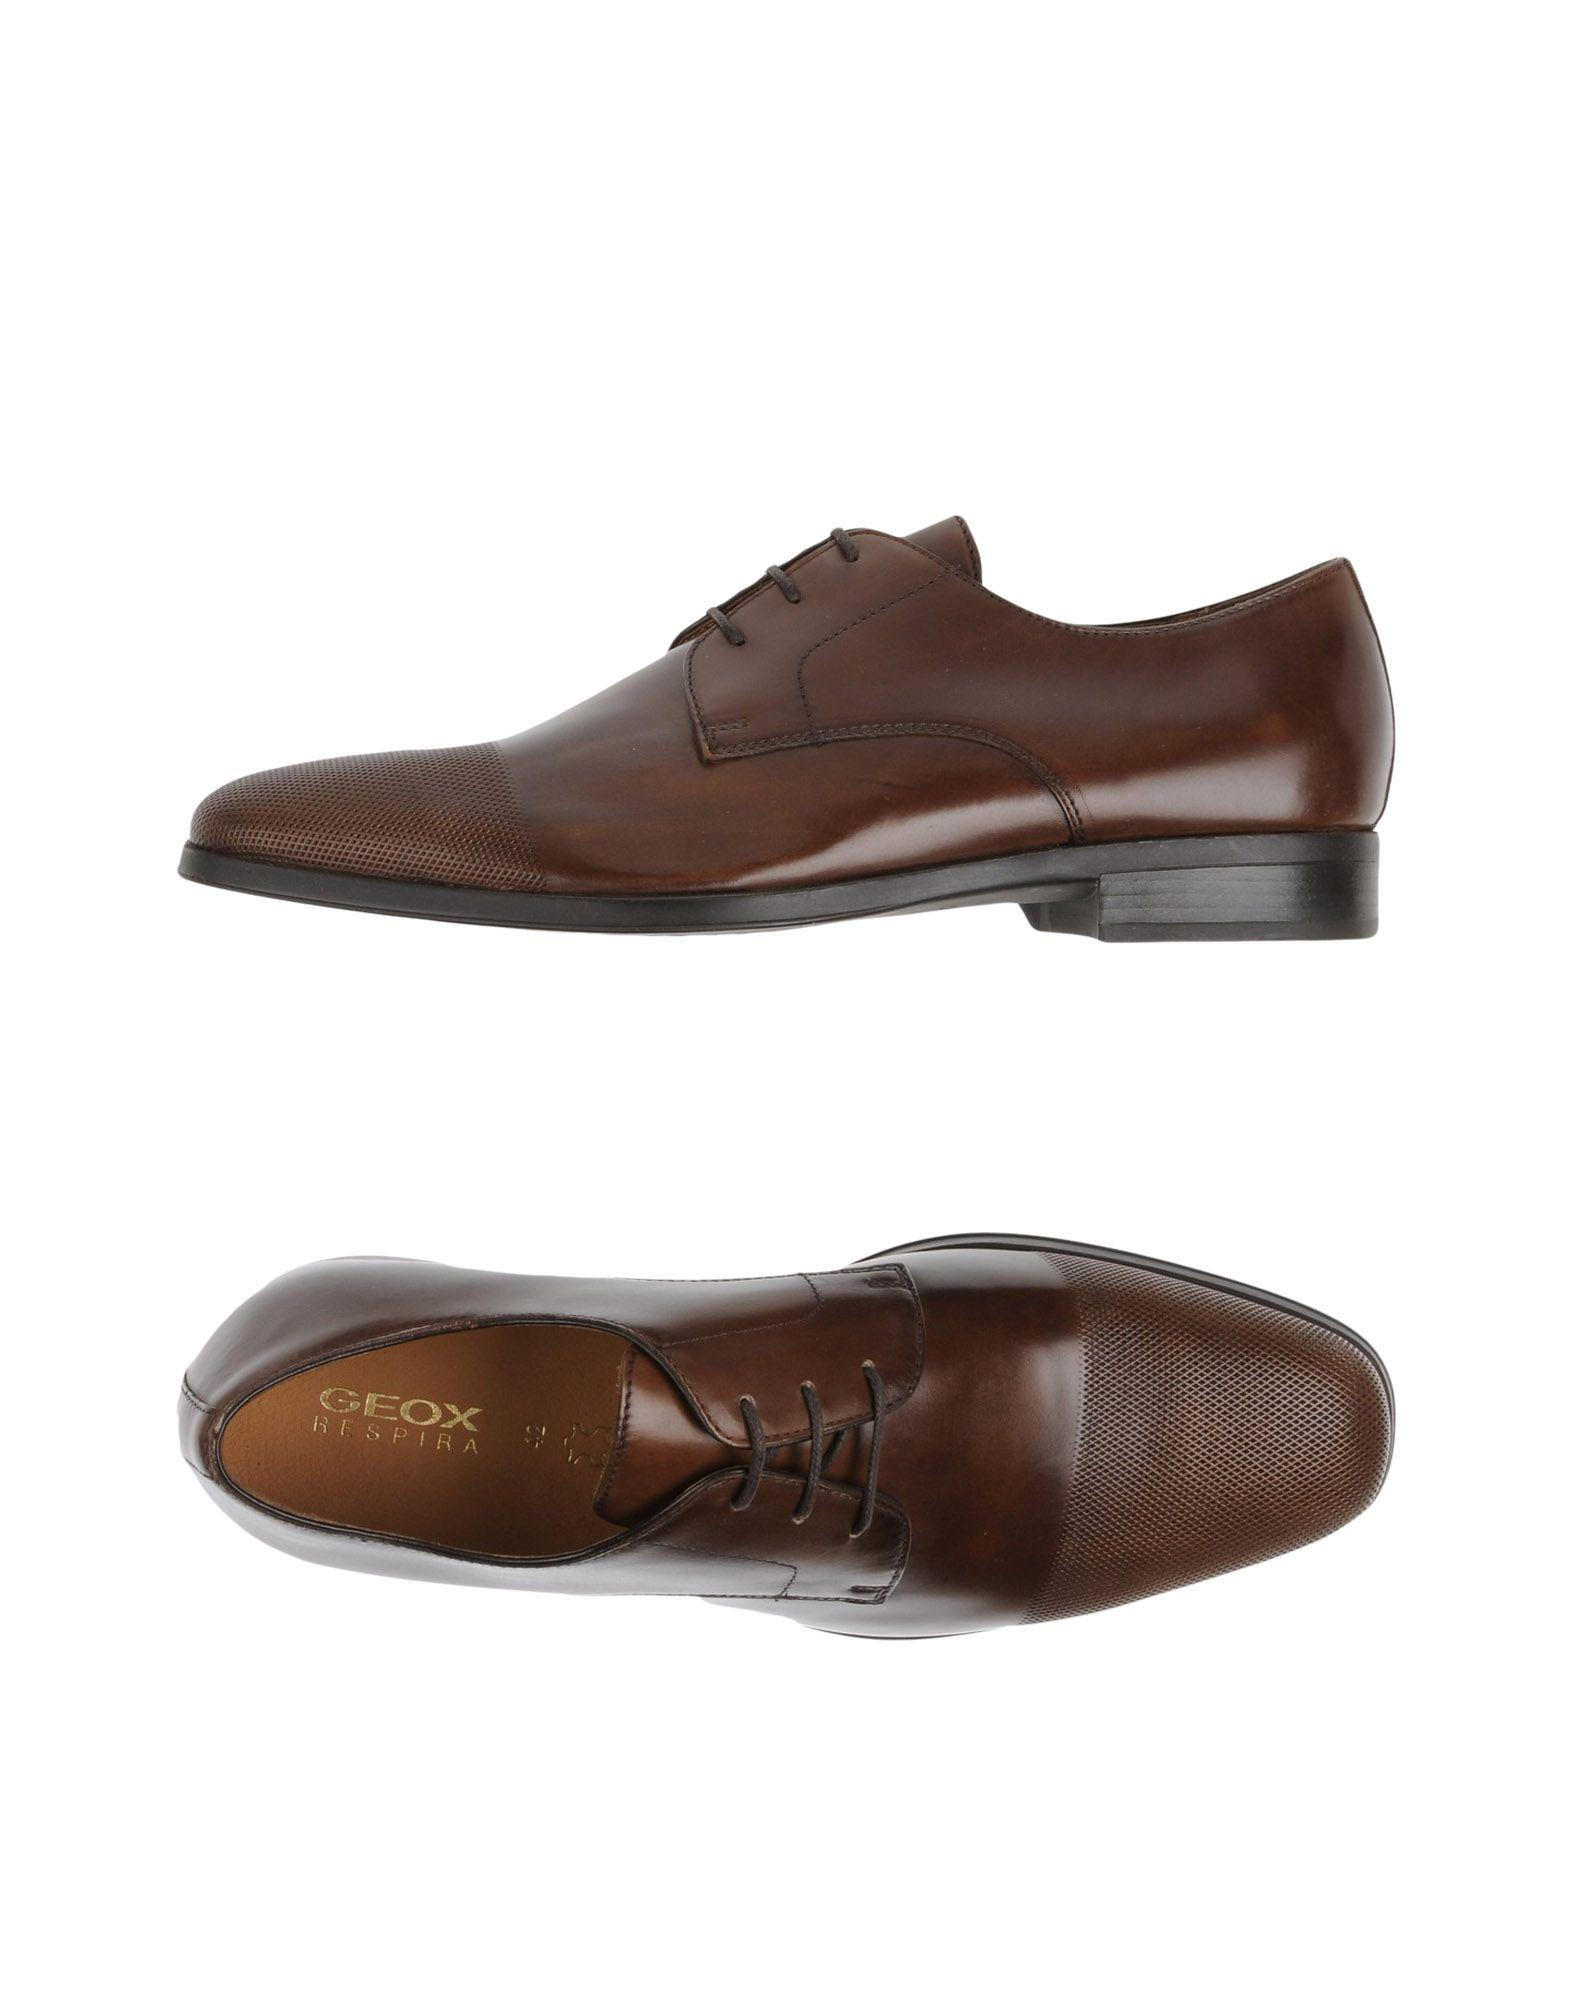 Lyst Geox Lace Up Shoe In Brown For Men